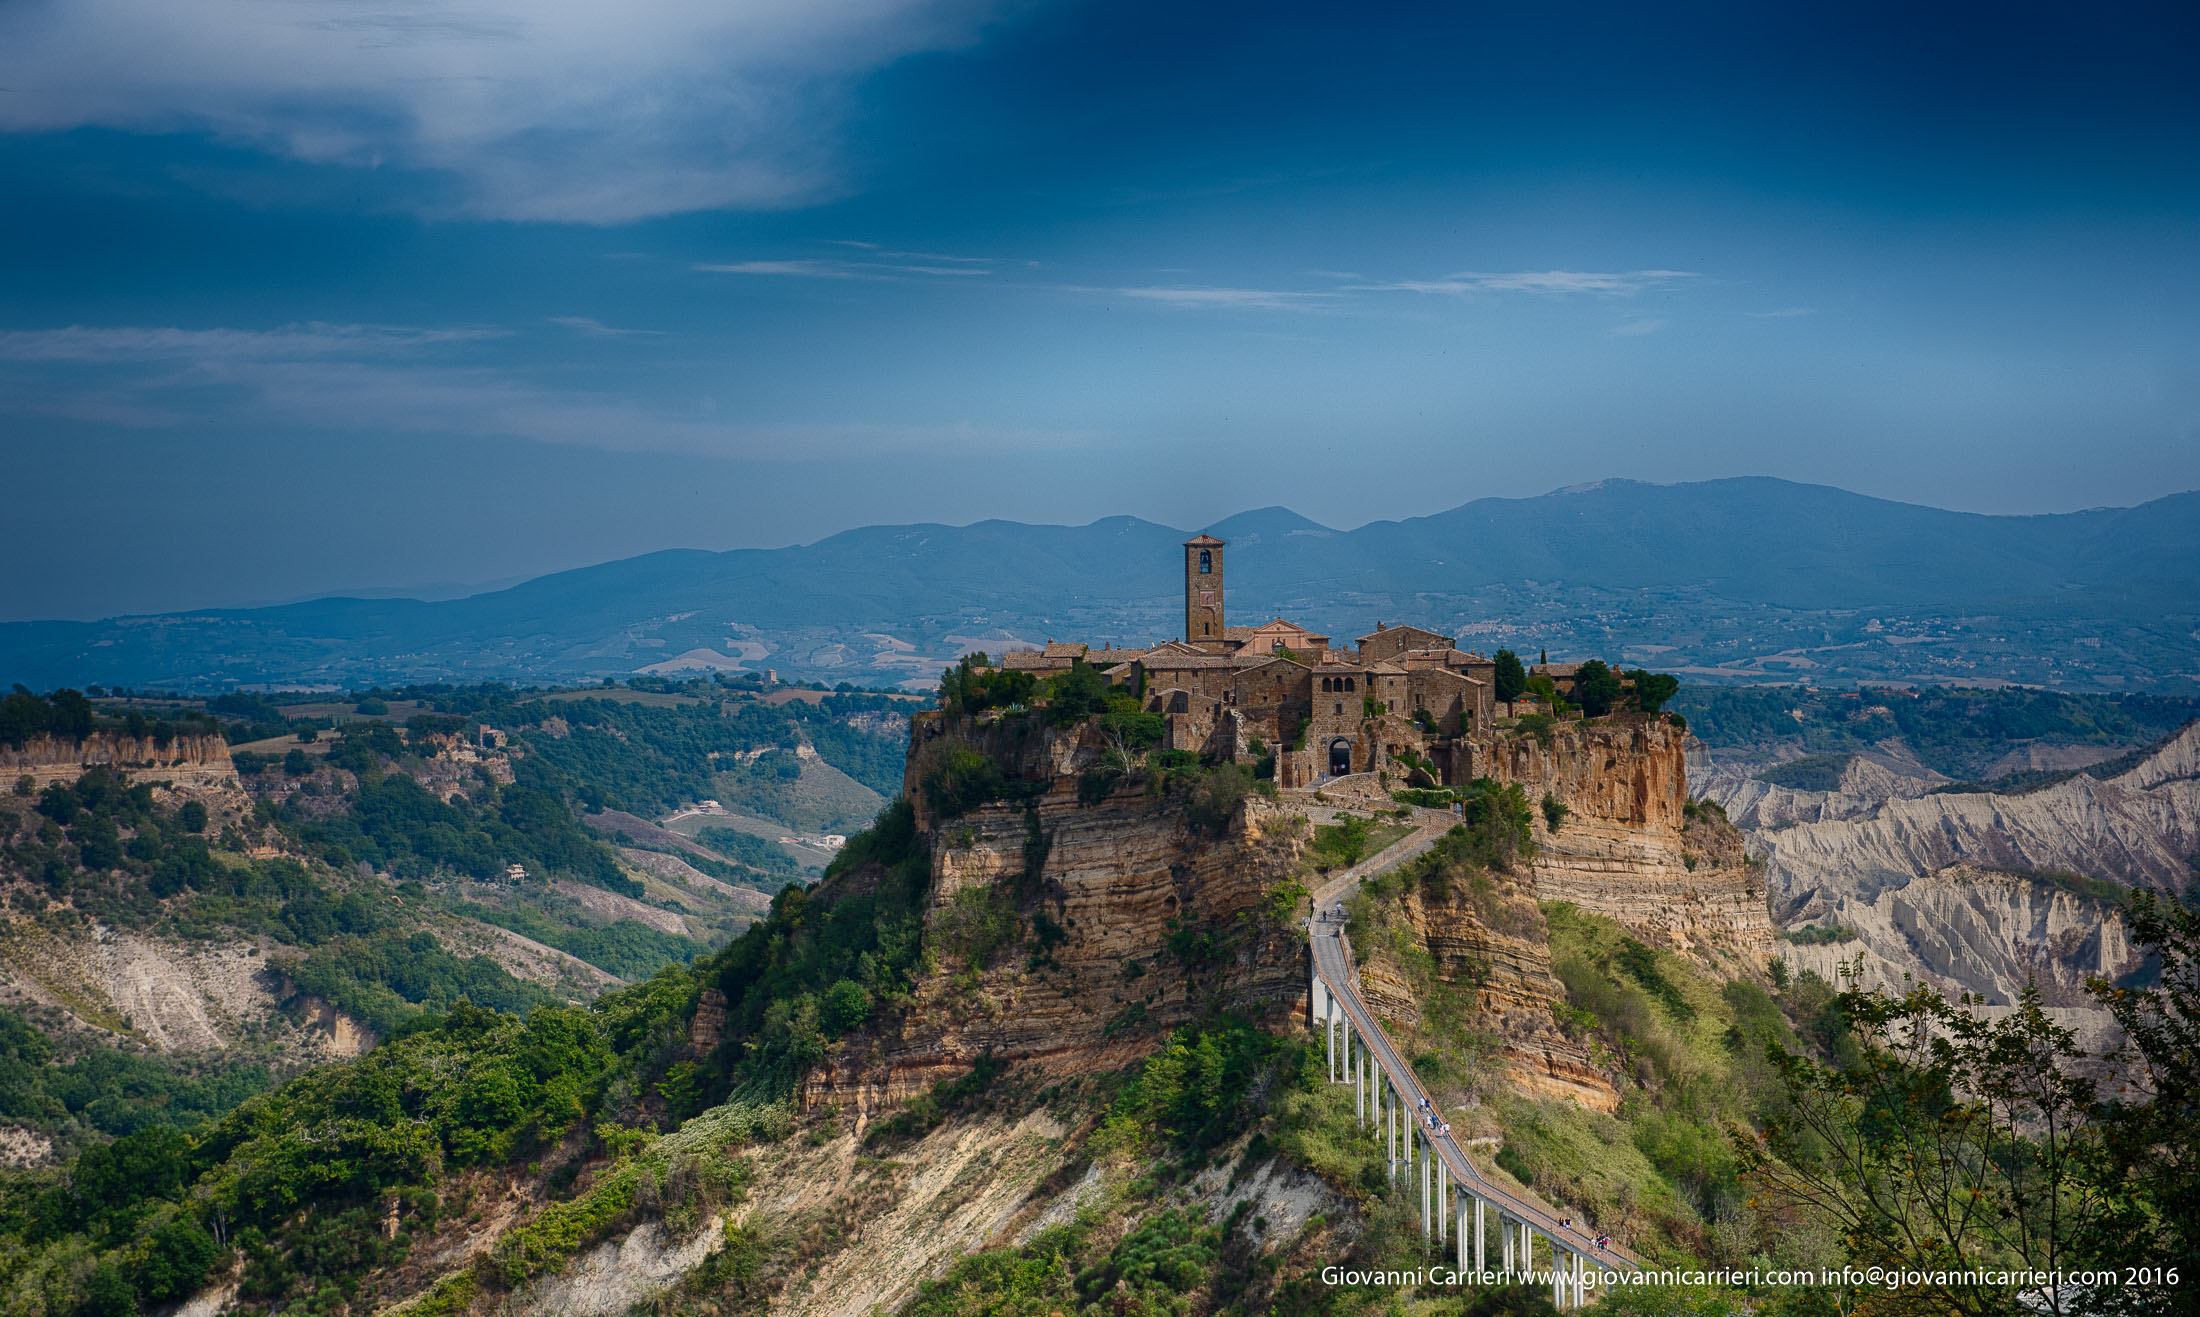 Photographs of Civita di Bagnoregio